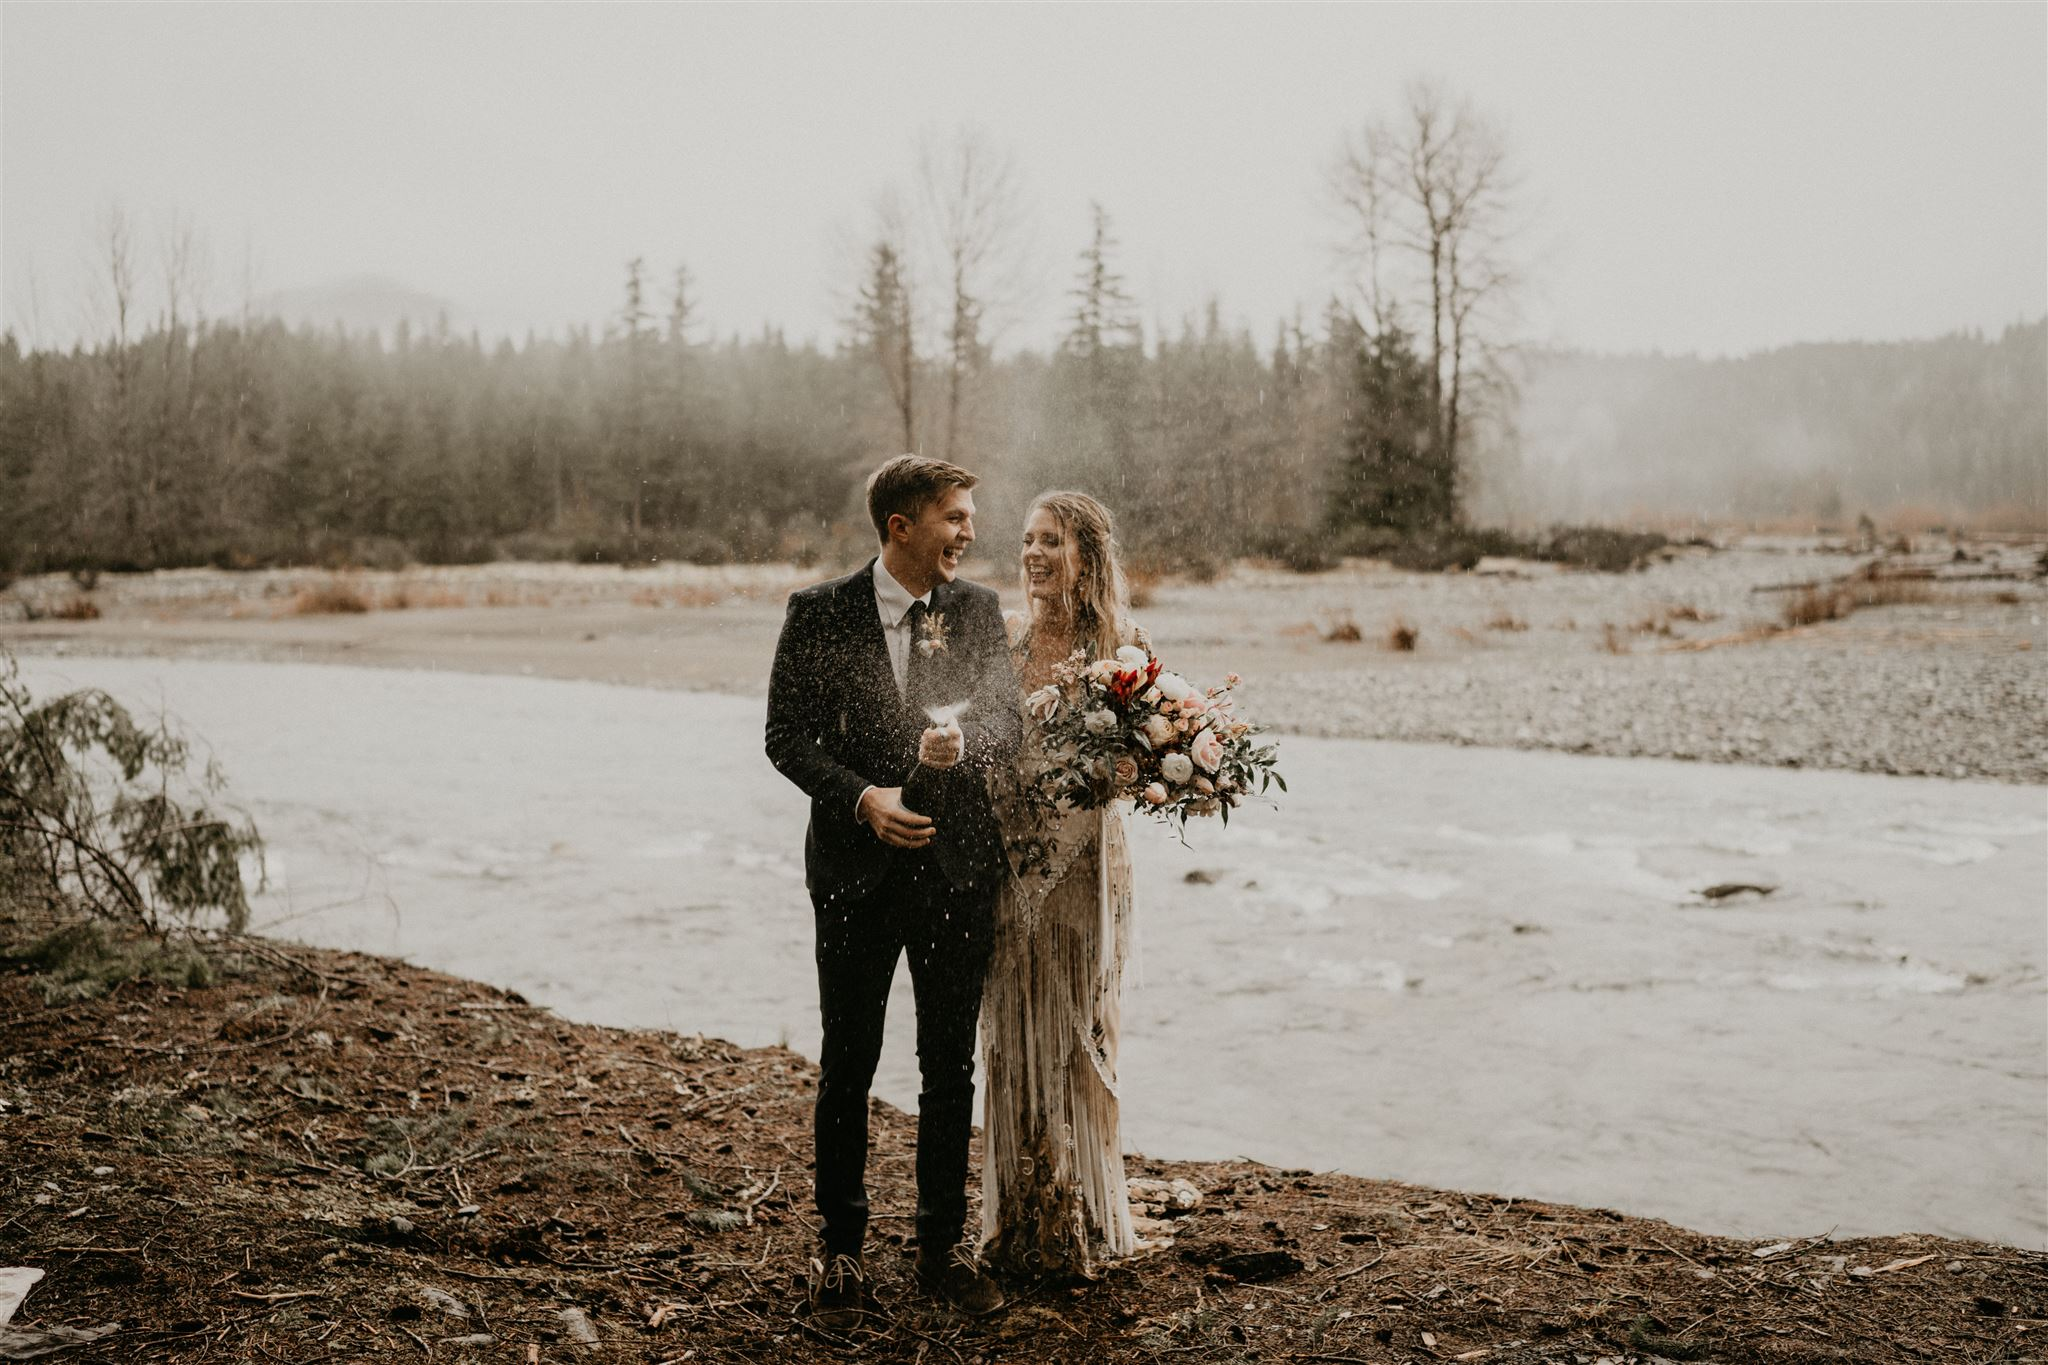 Best places to elope in washington